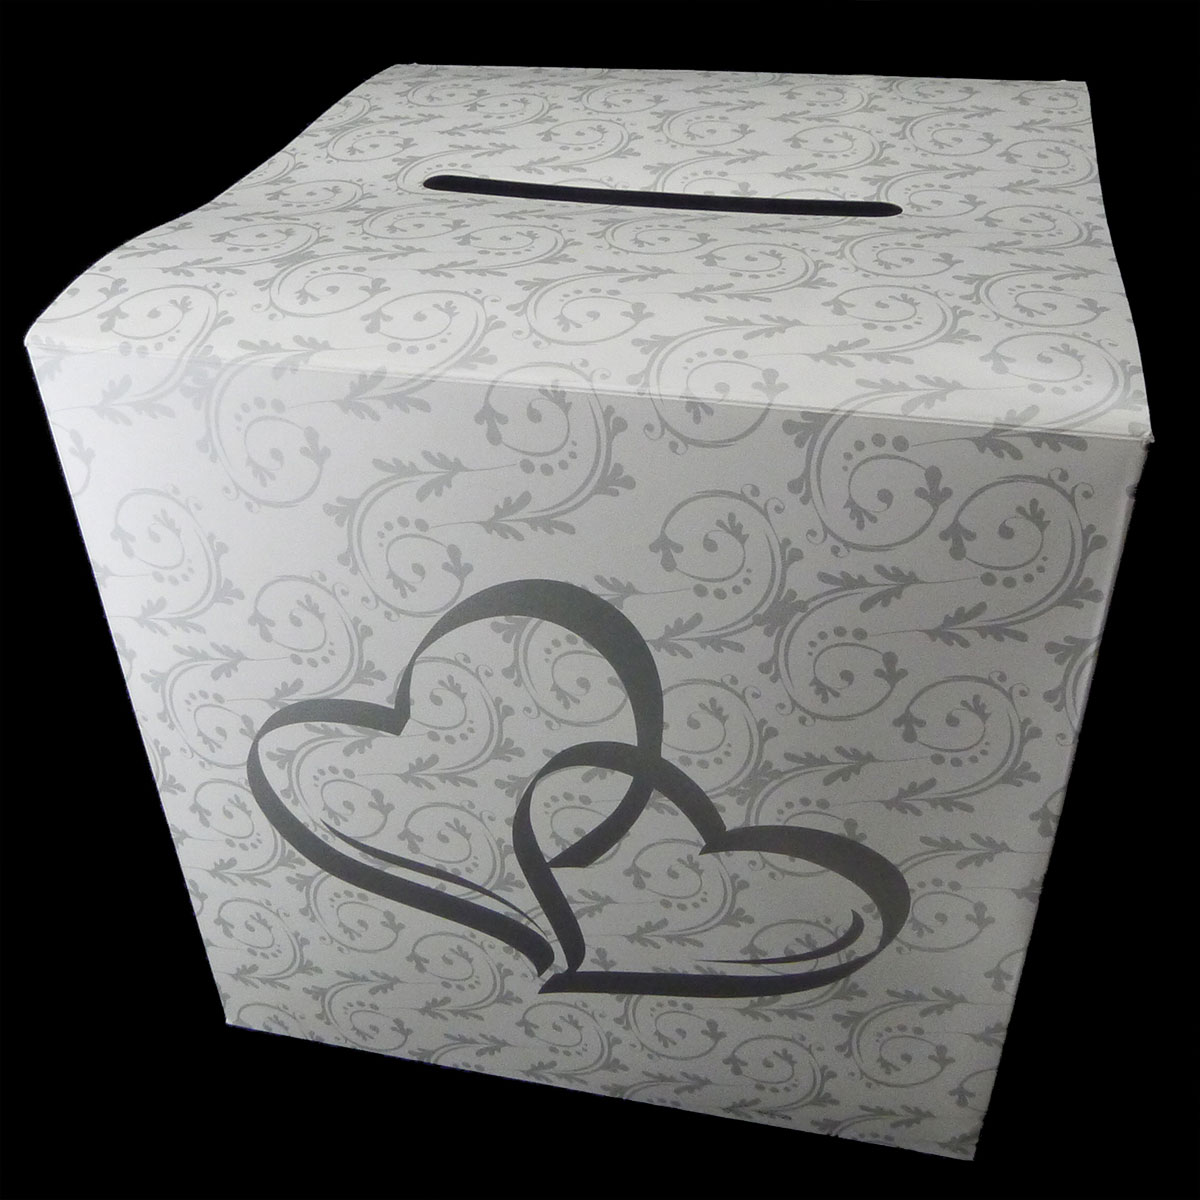 Tytroy Inc: Wedding Card Money Gift Box Two Hearts Reception Wishing ...